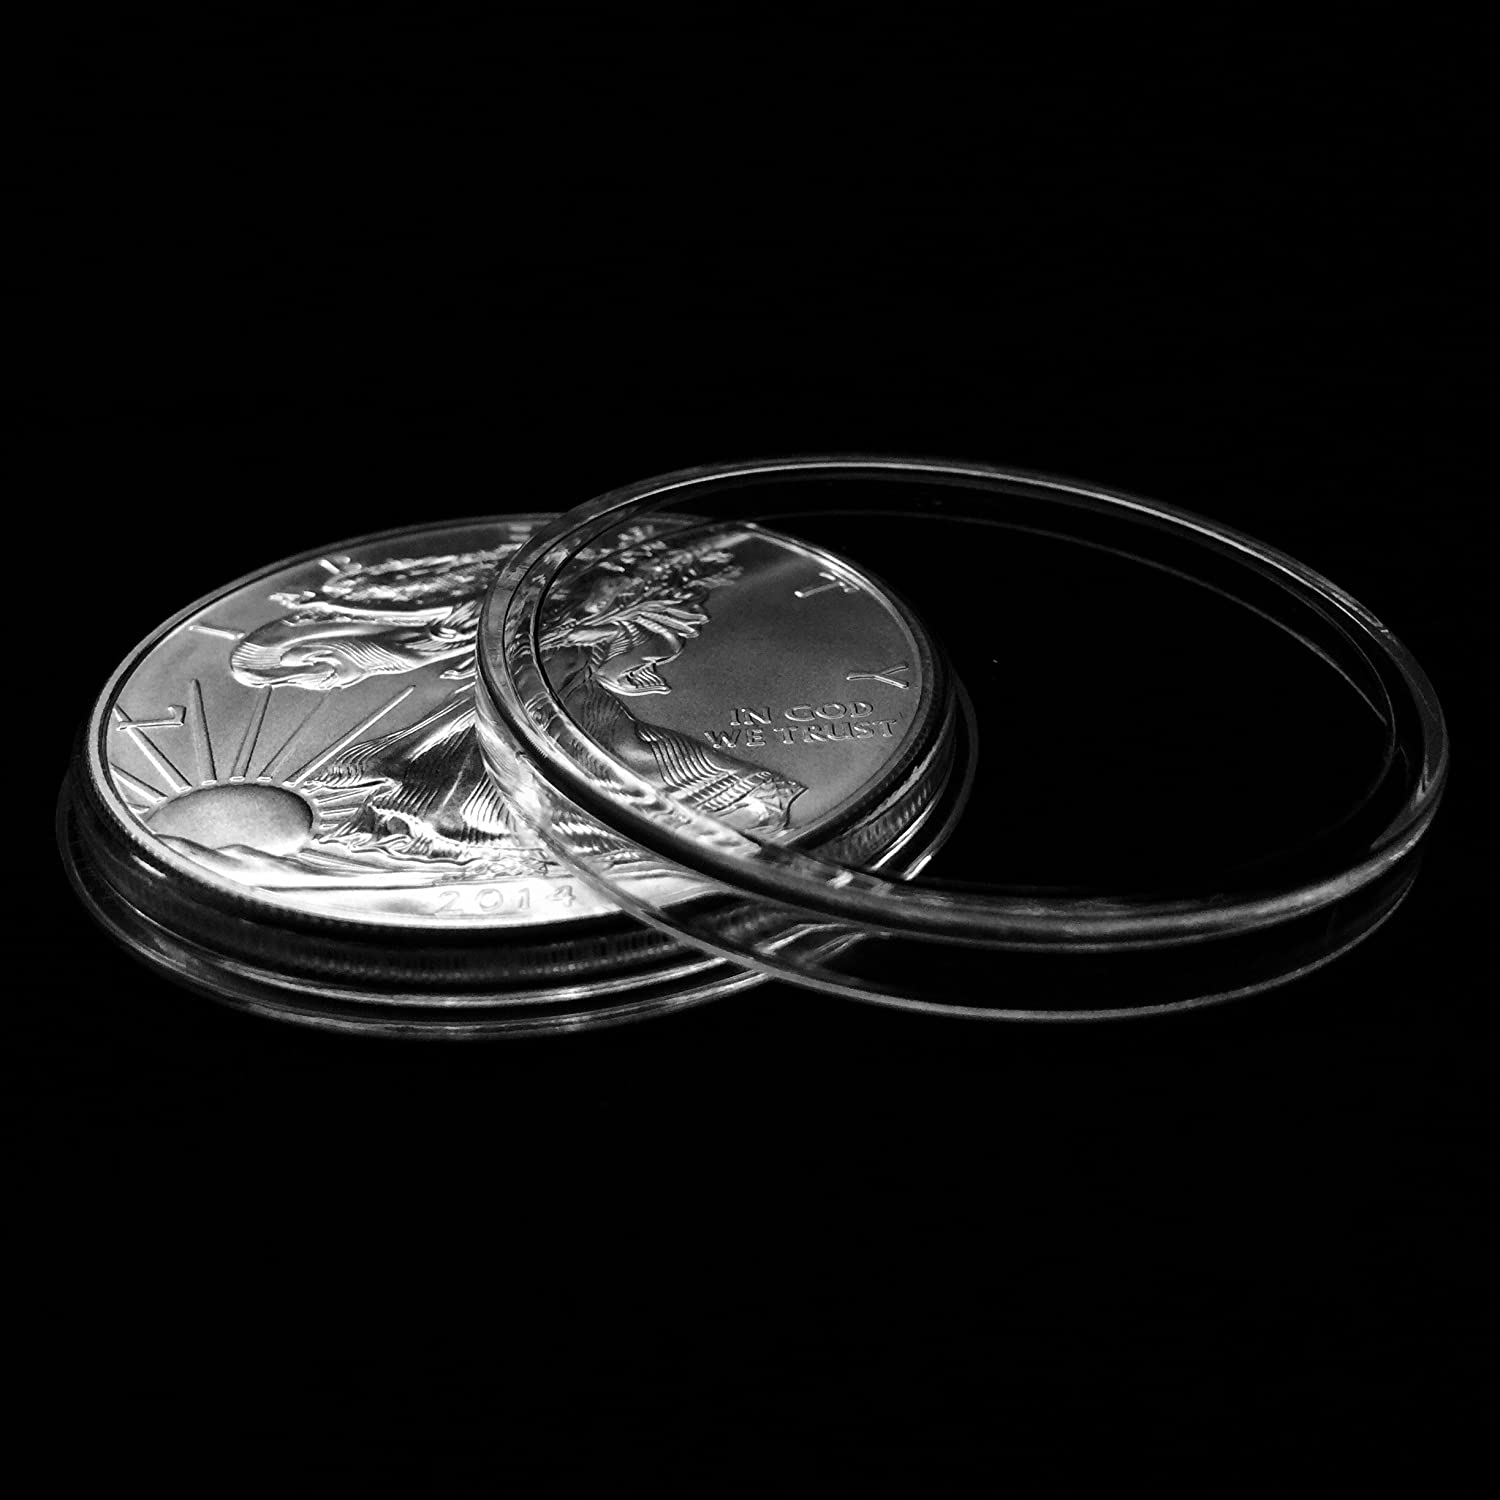 5 Air-tite 40mm Black Ring Coin Holder Capsules for American Silver Eagles /& 1oz China Silver Panda Sterling